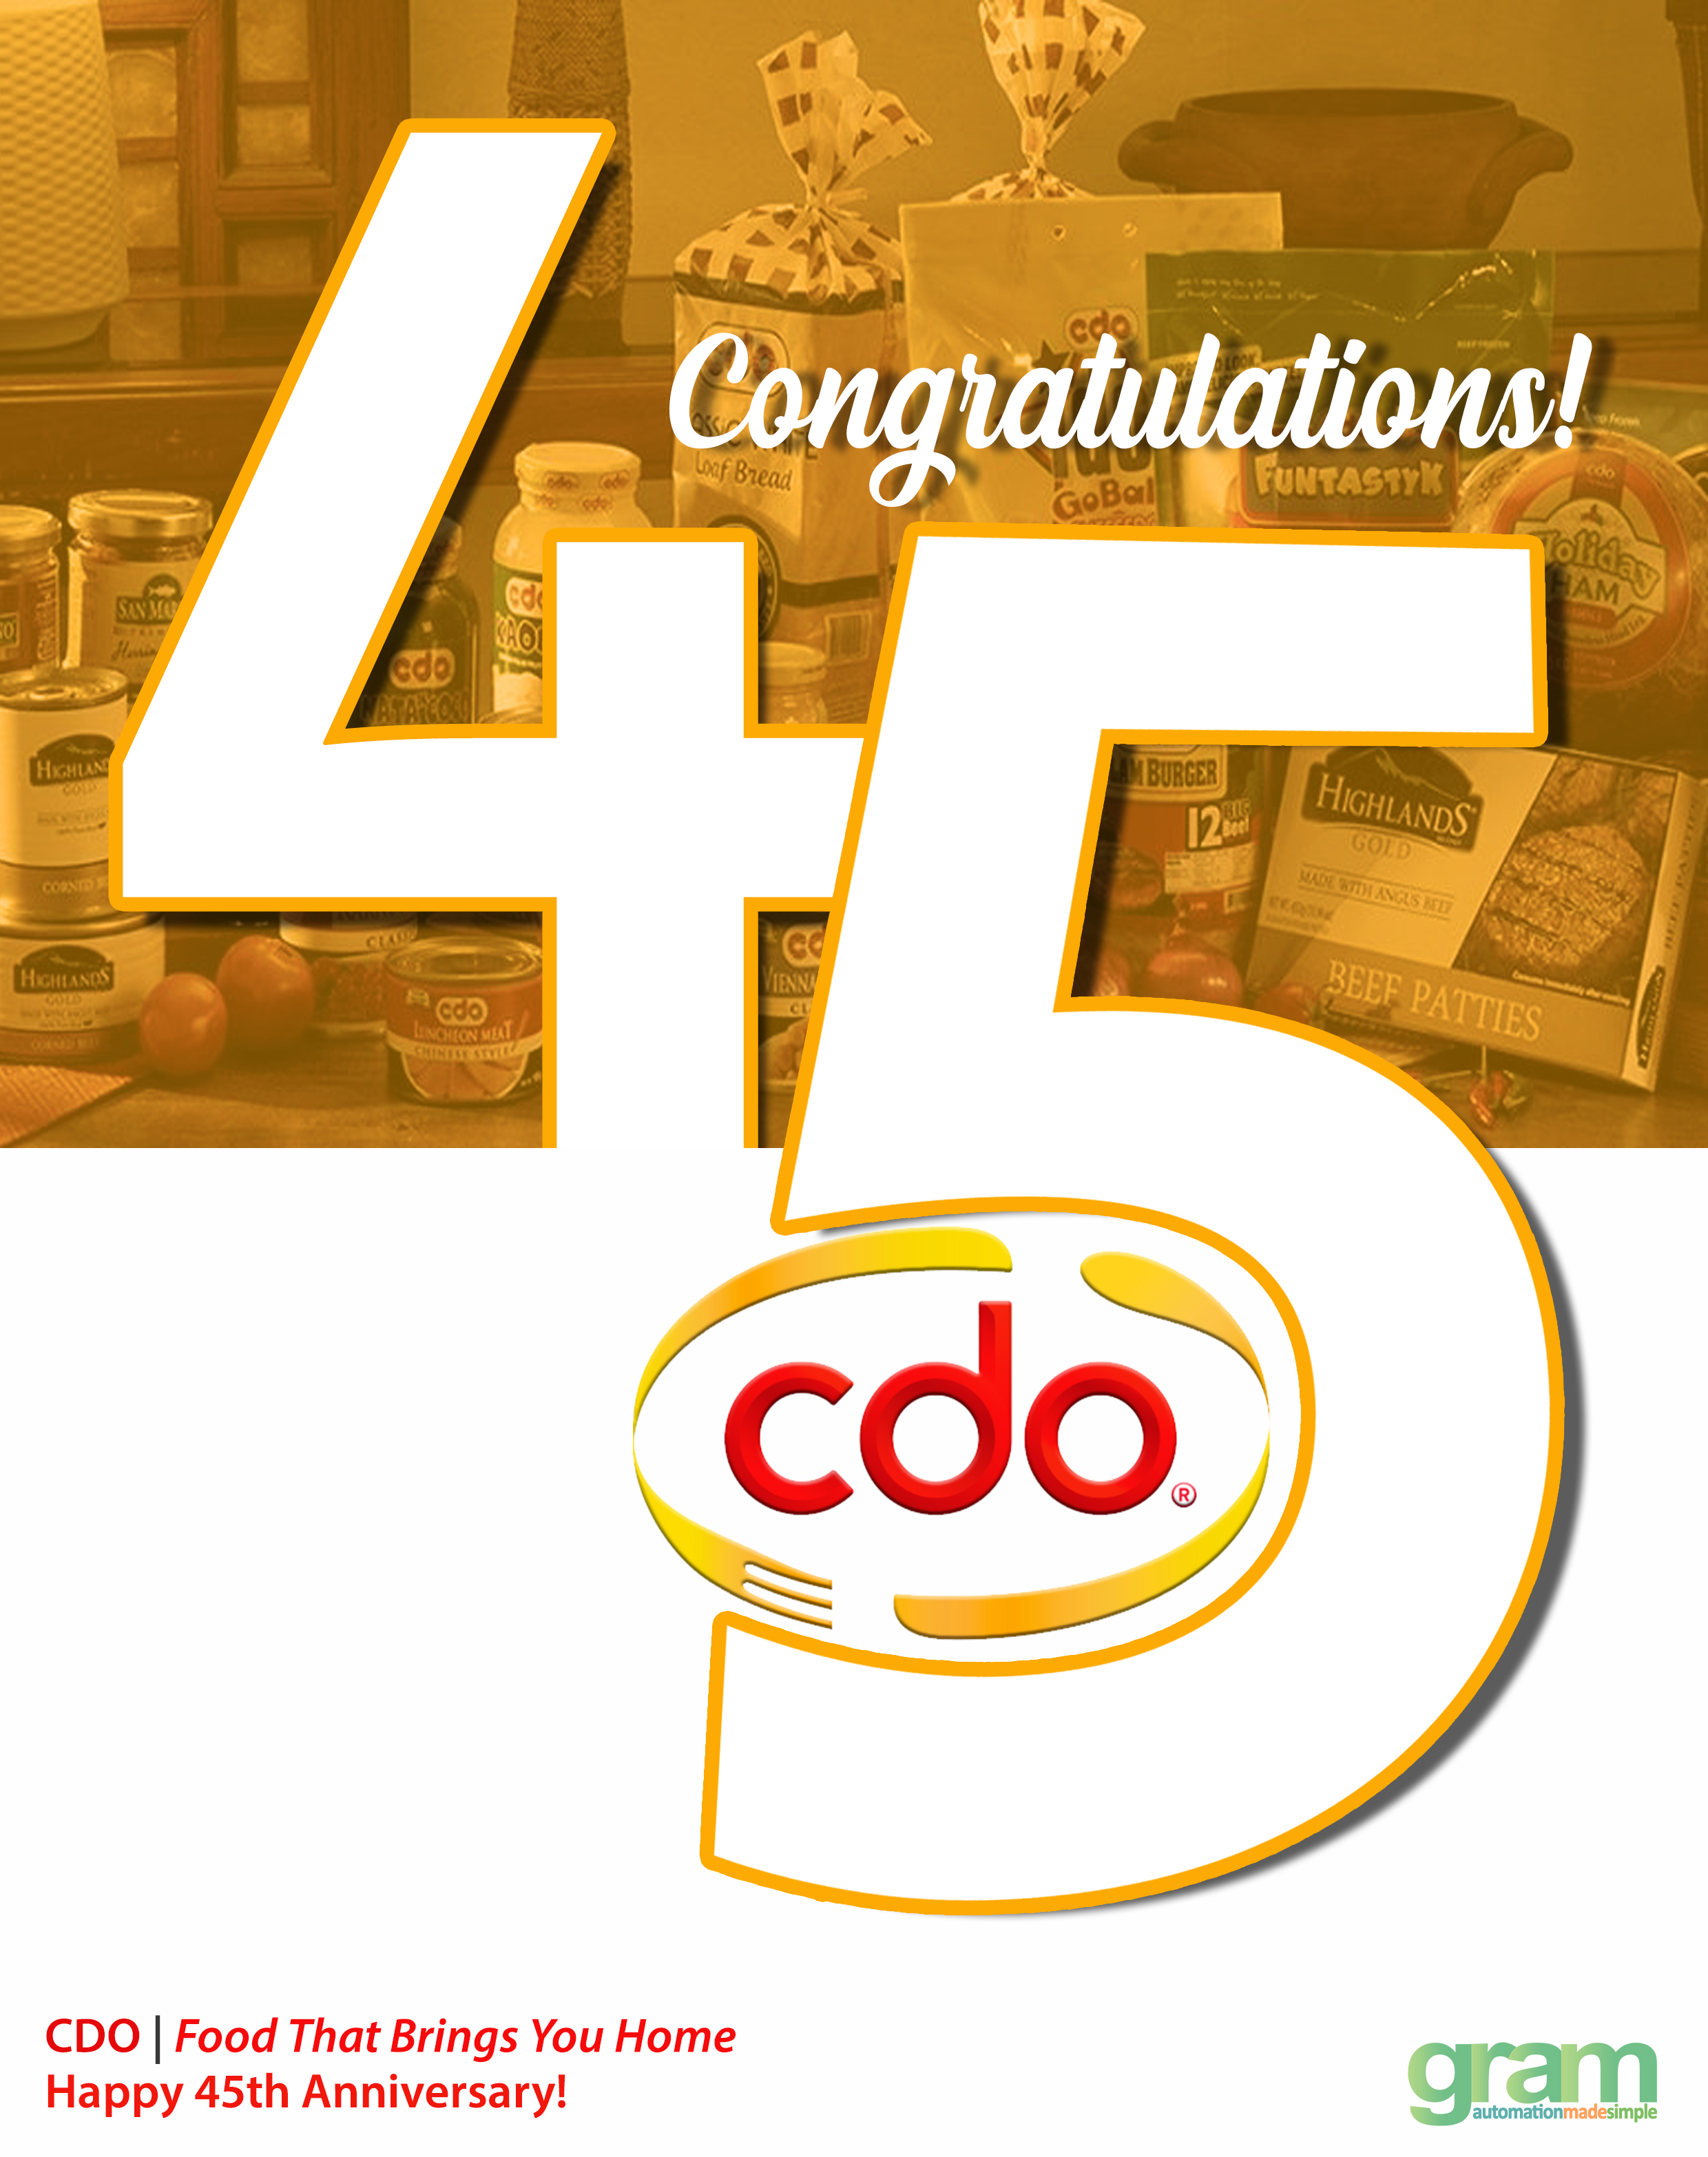 Happy 45th Anniversary CDO!